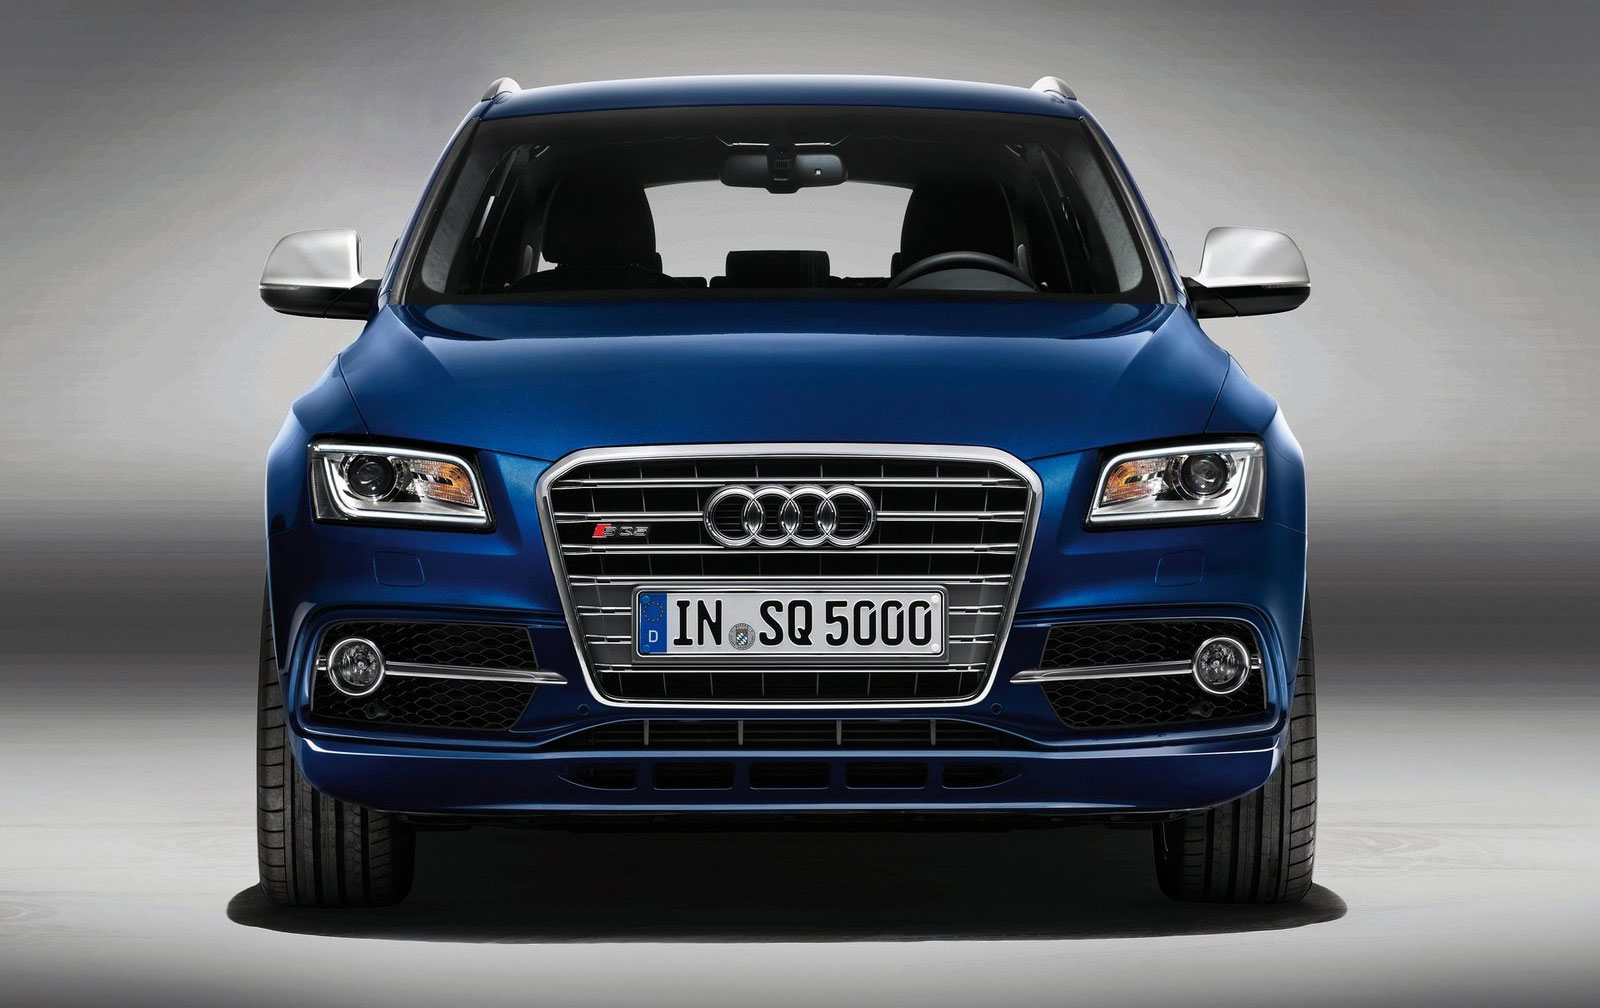 audi sq5 tdi the first diesel powered s car paul tan image 112910. Black Bedroom Furniture Sets. Home Design Ideas